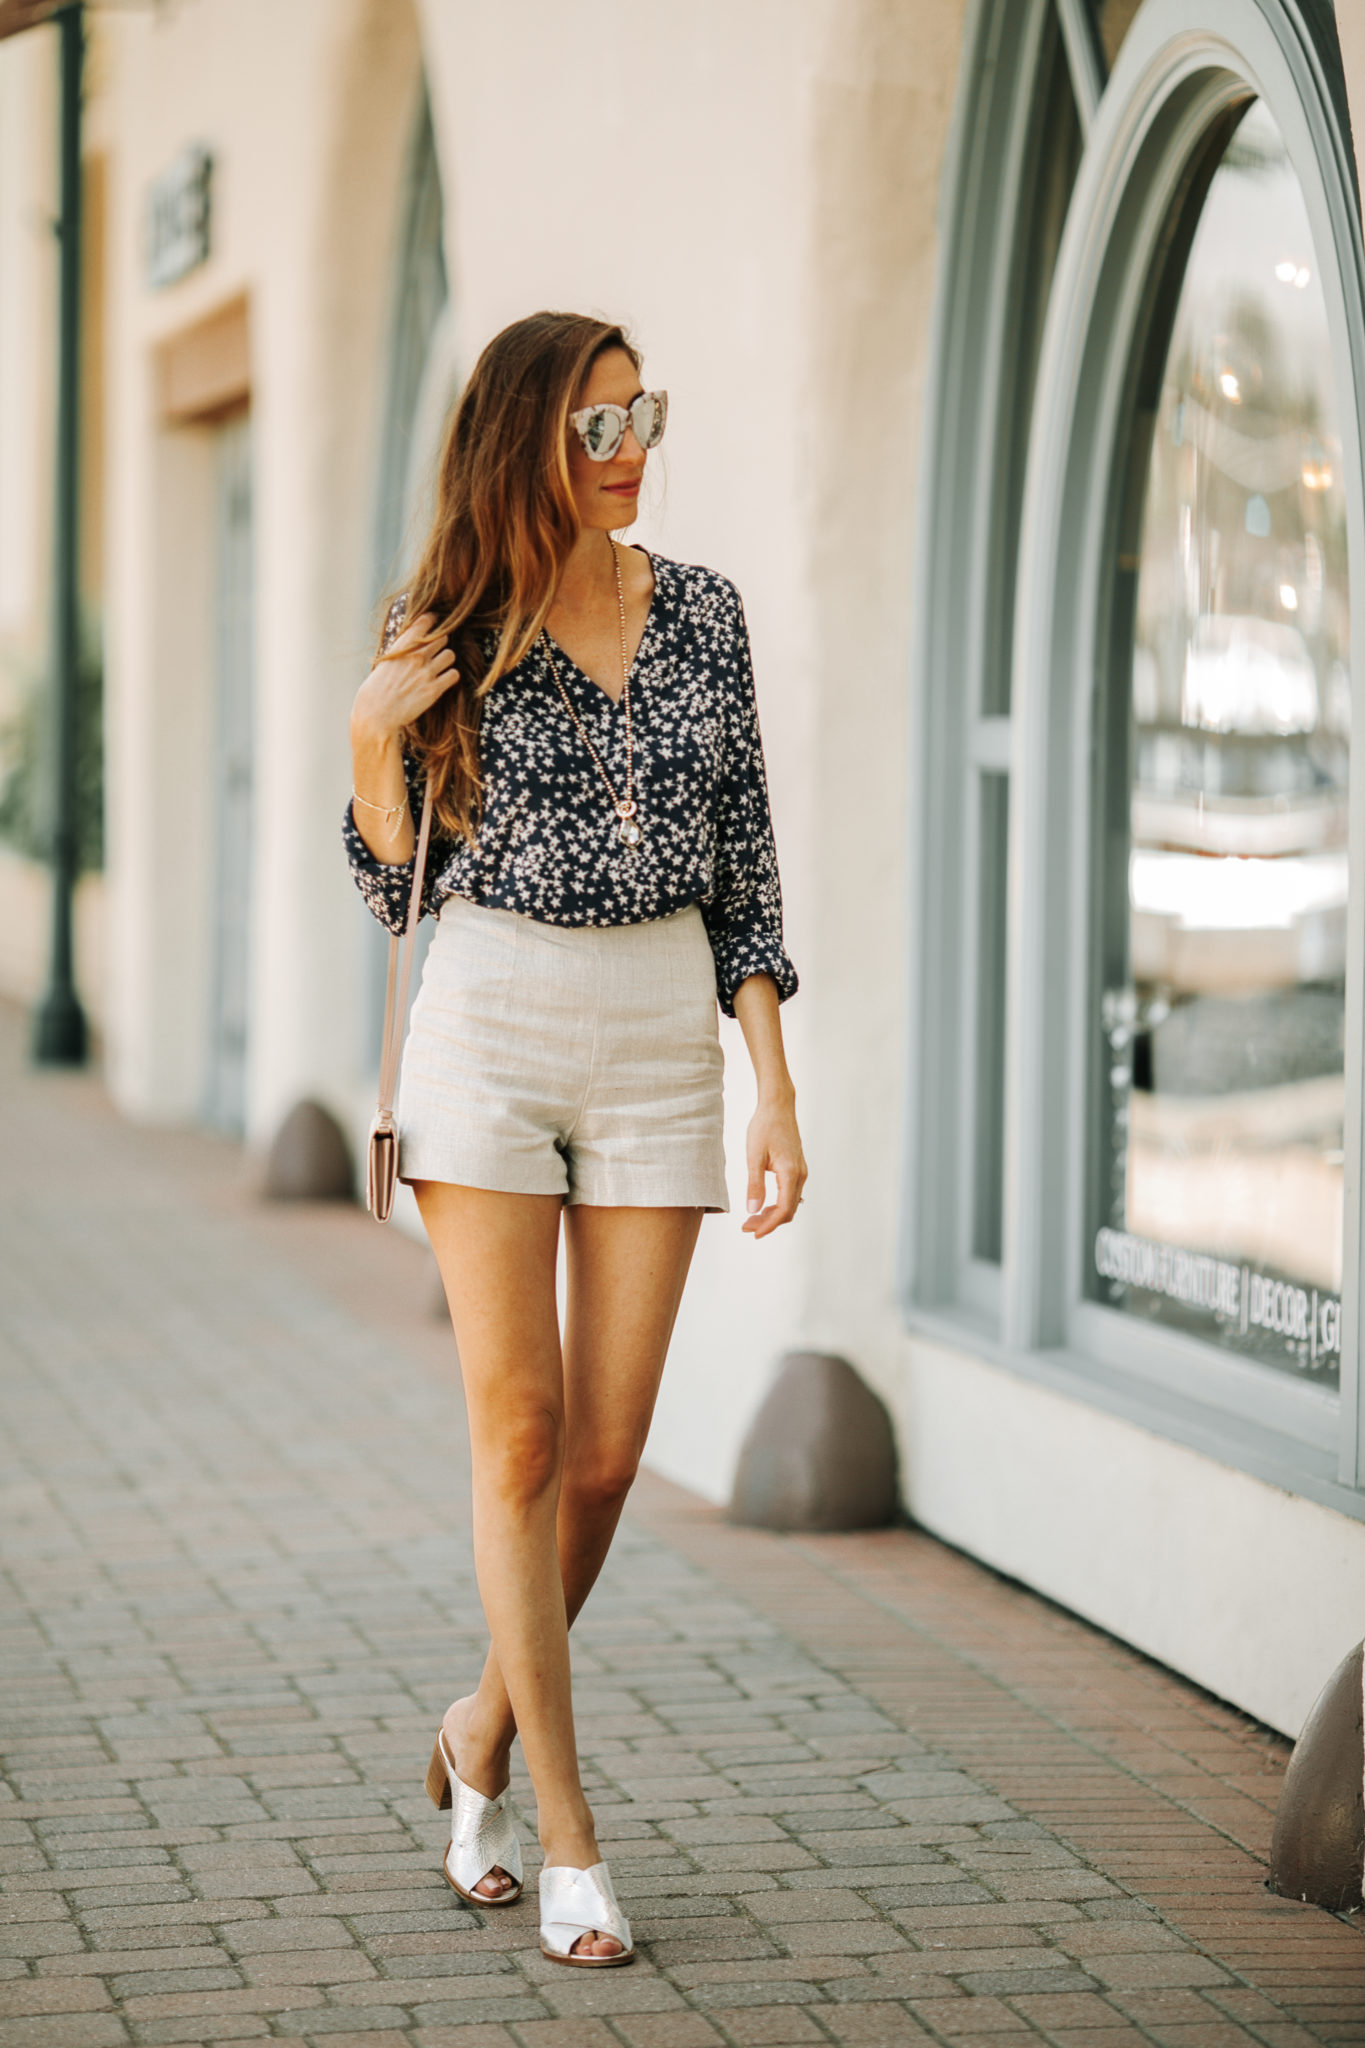 star printed shirts and shorts